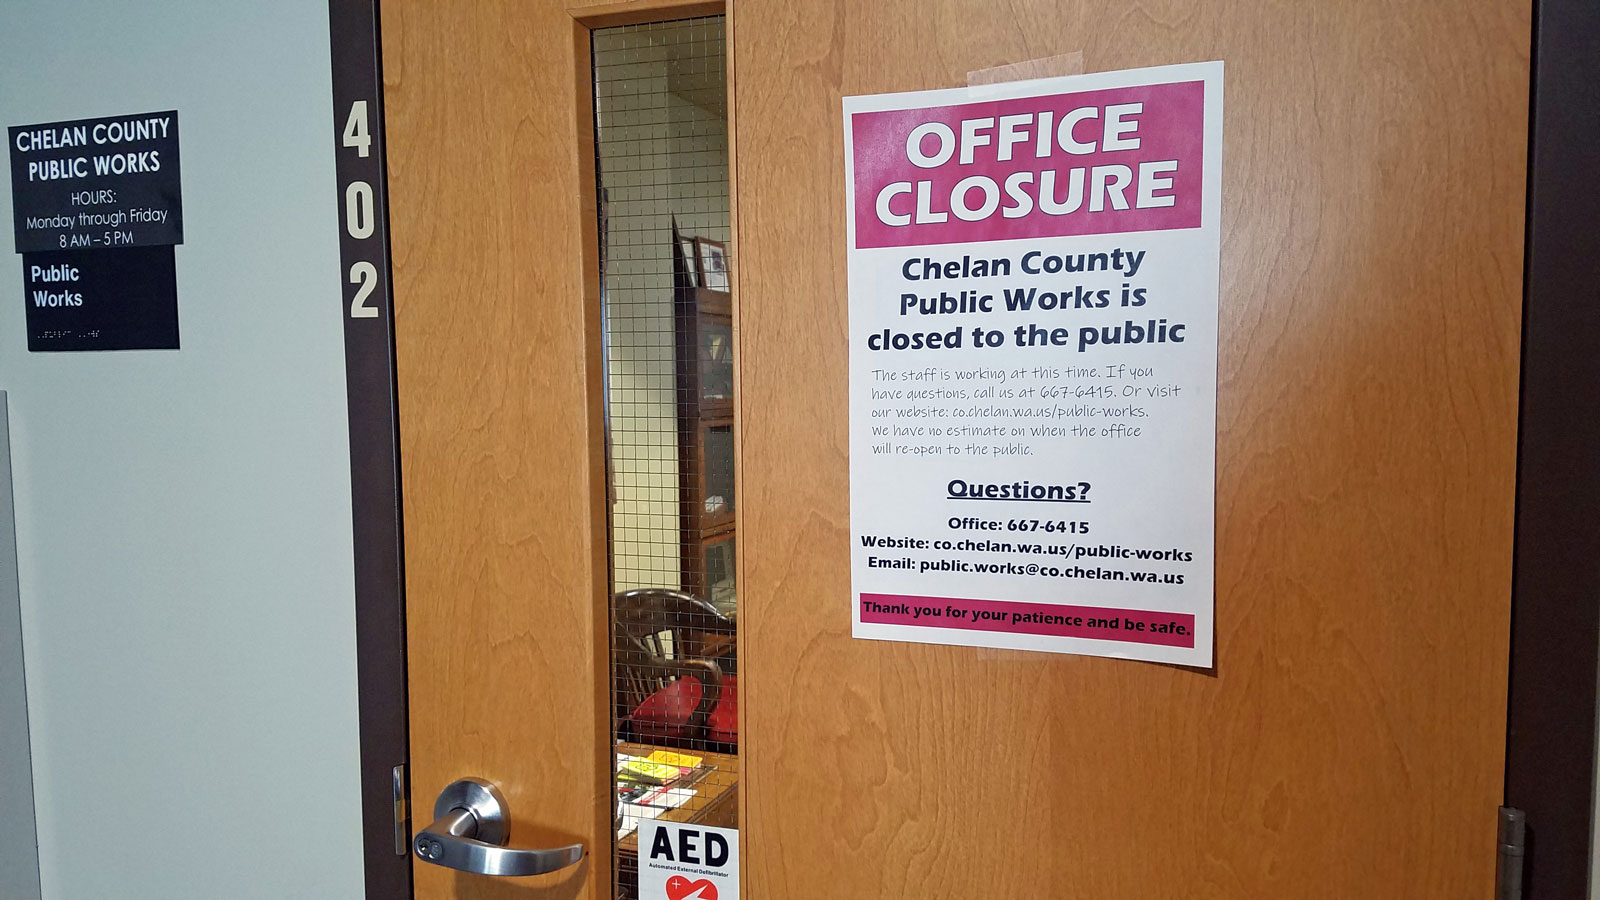 Public Works closes its office to the public